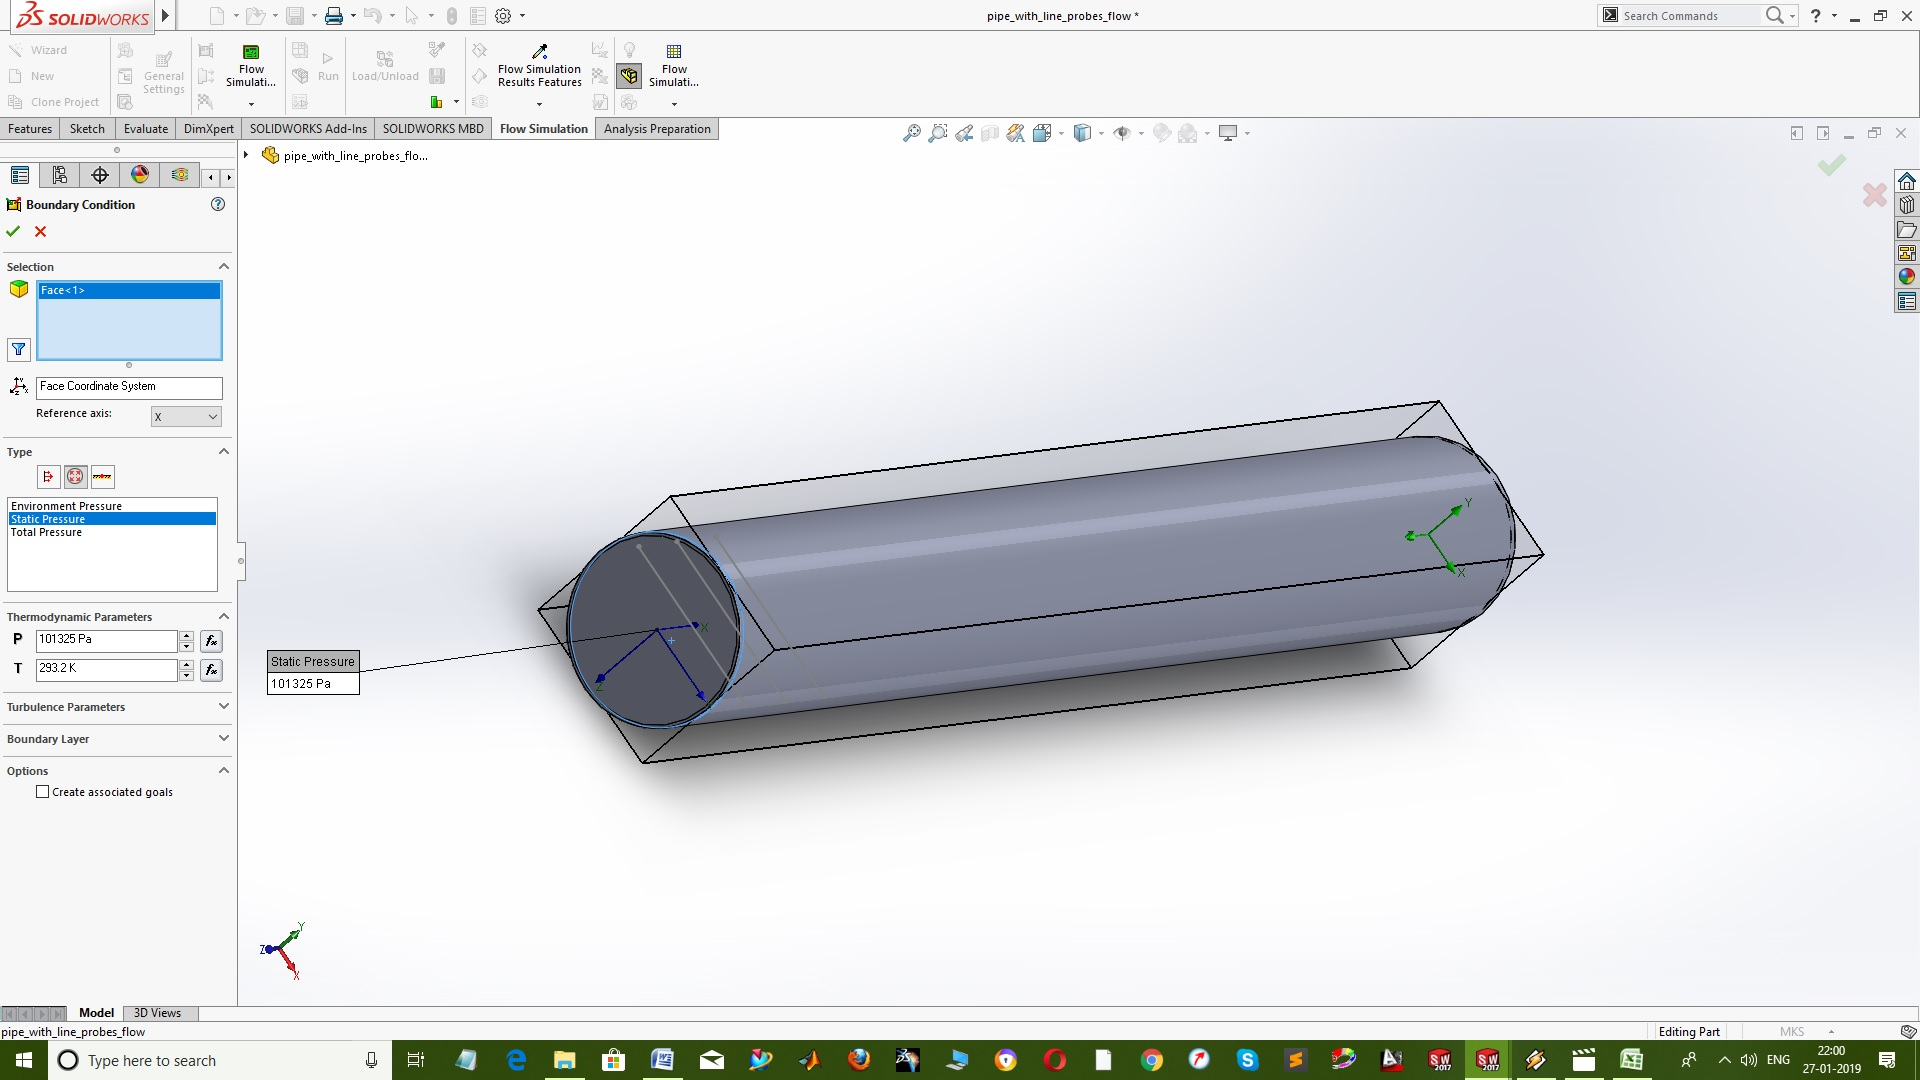 Getting started with Flow SImulation in SolidWorks